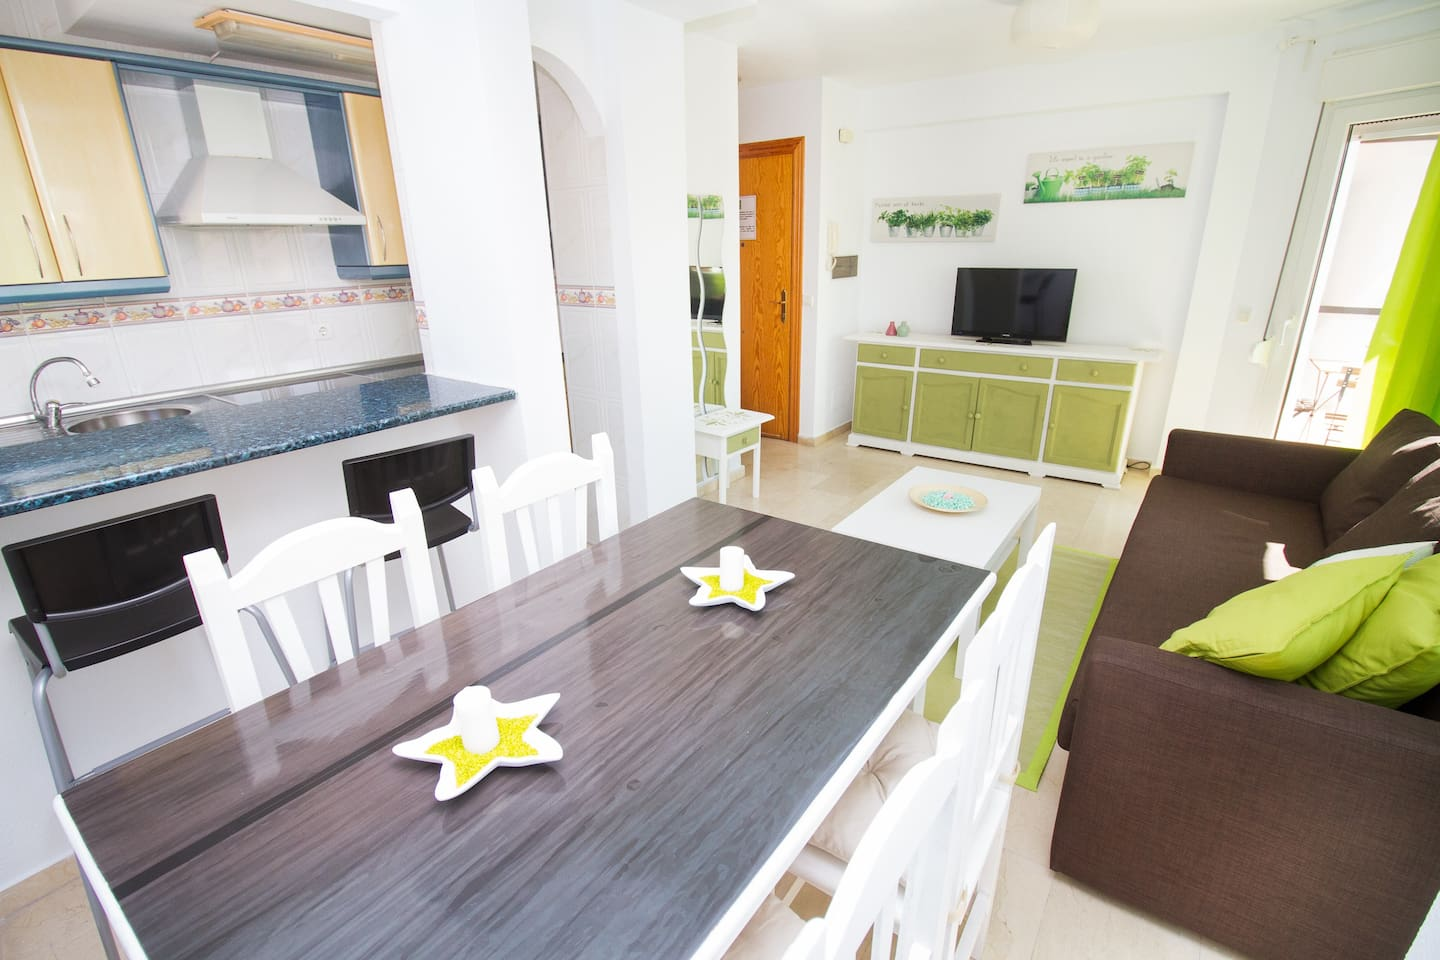 Apartamento Tauro Edificio Morgan 5 E Apartments For Rent  # Muebles Mogar Malaga